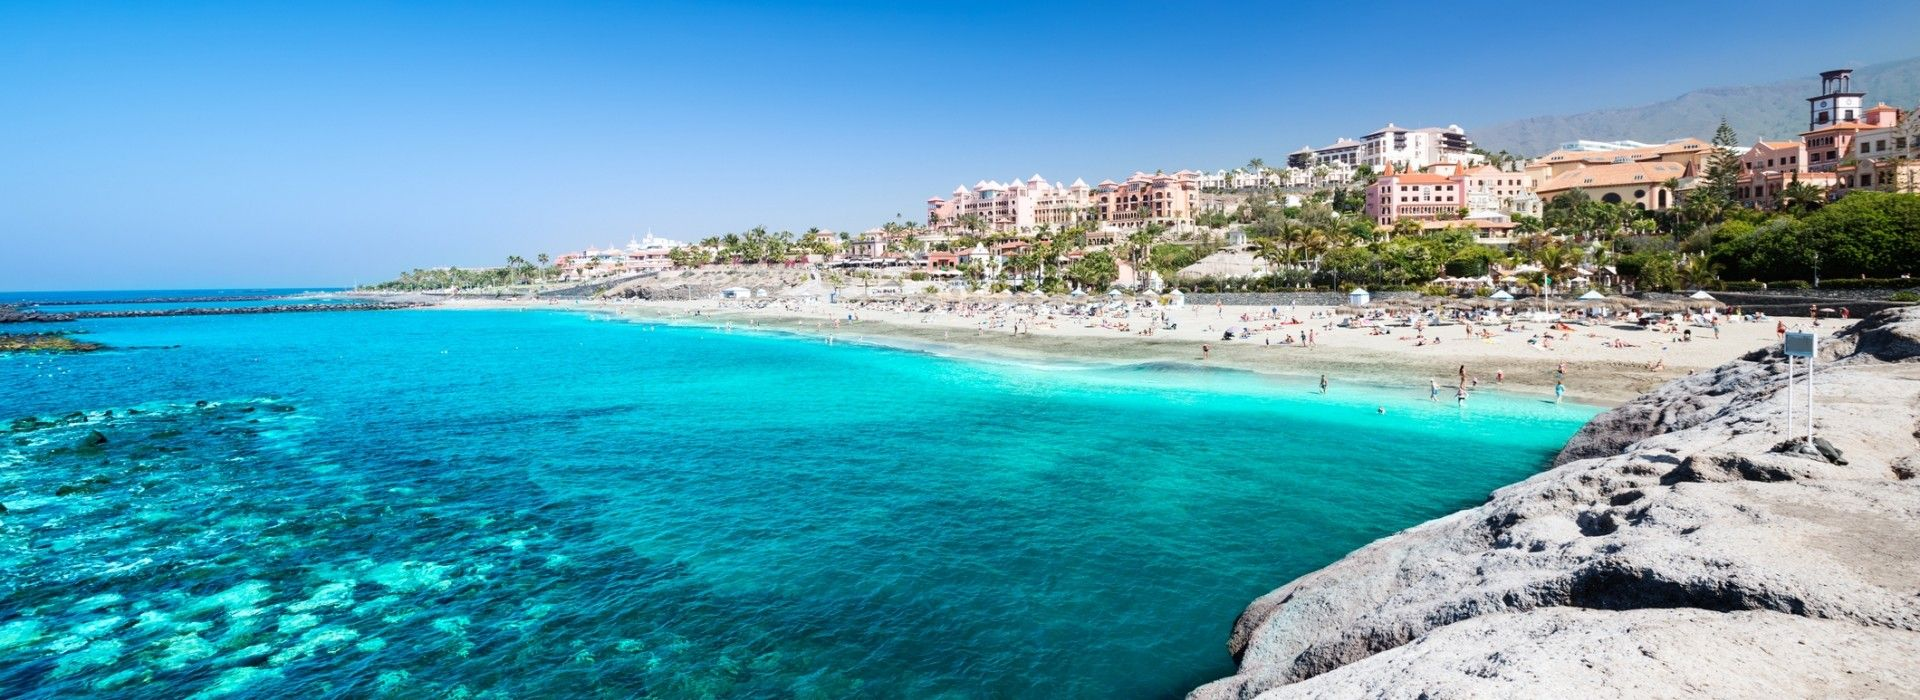 Travelling Canary Islands - Tours and Holiday Packages in Canary Islands